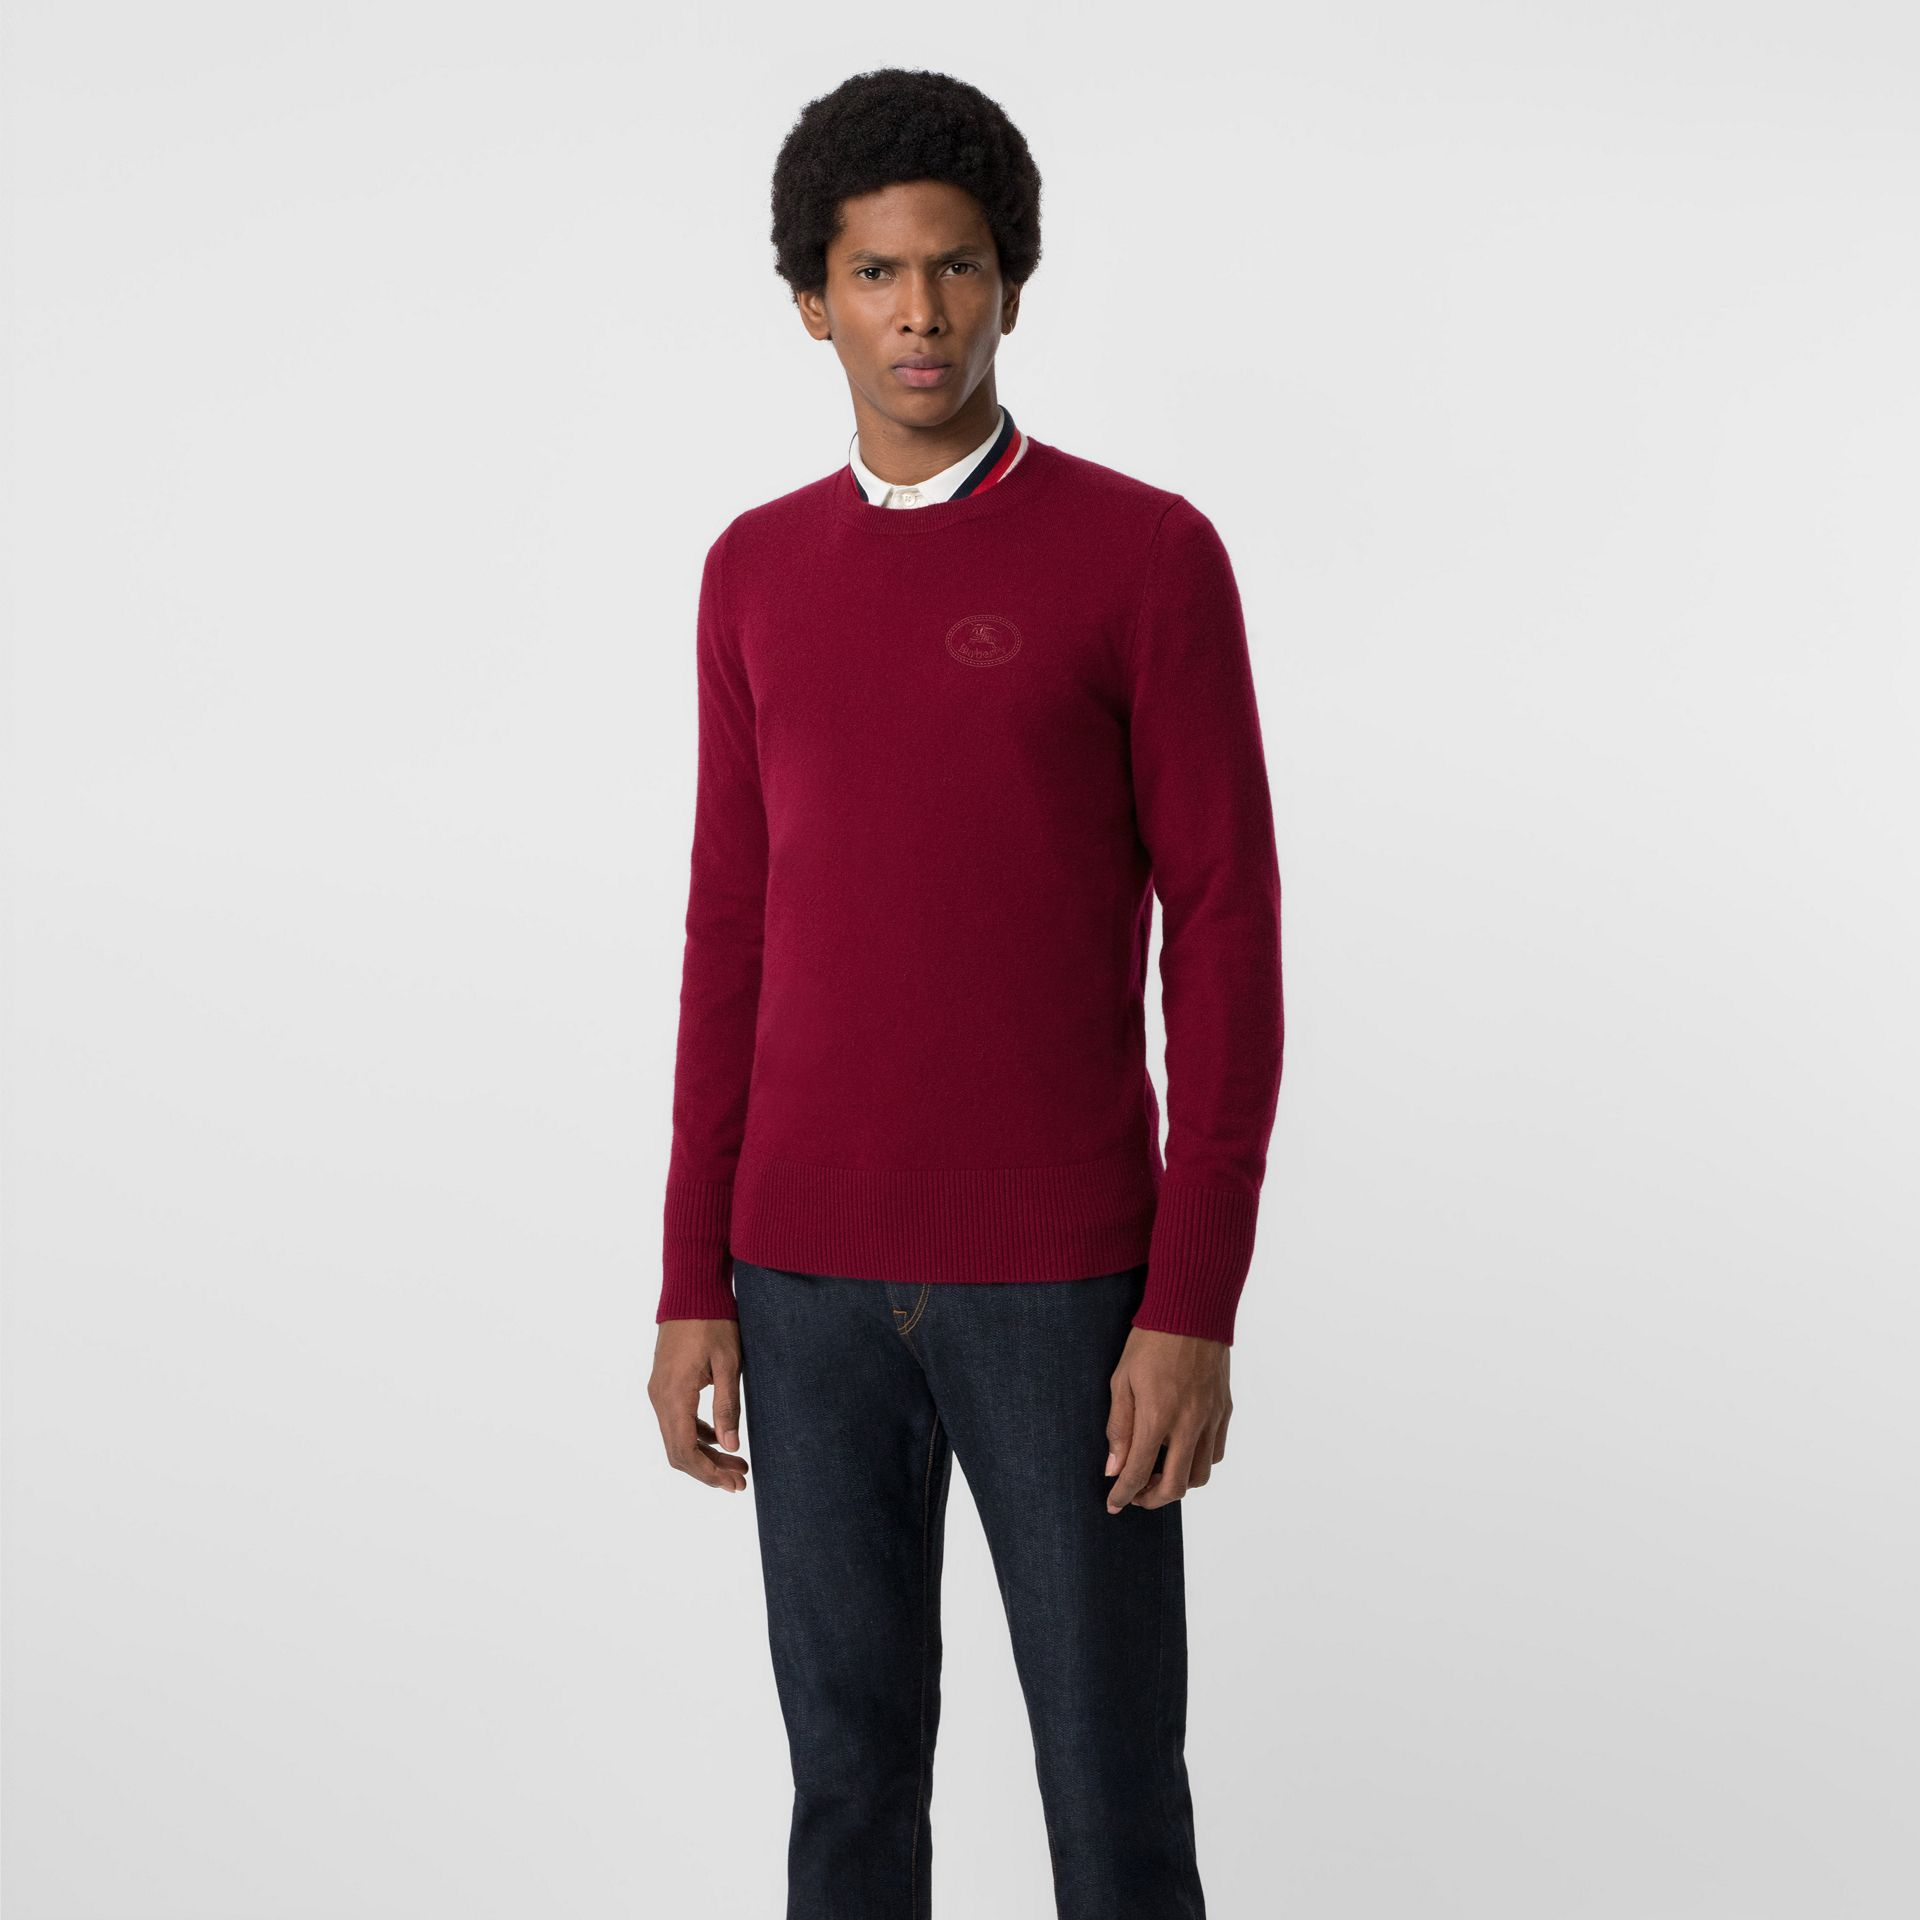 Embroidered Logo Cashmere Sweater in Claret - Men | Burberry - gallery image 4